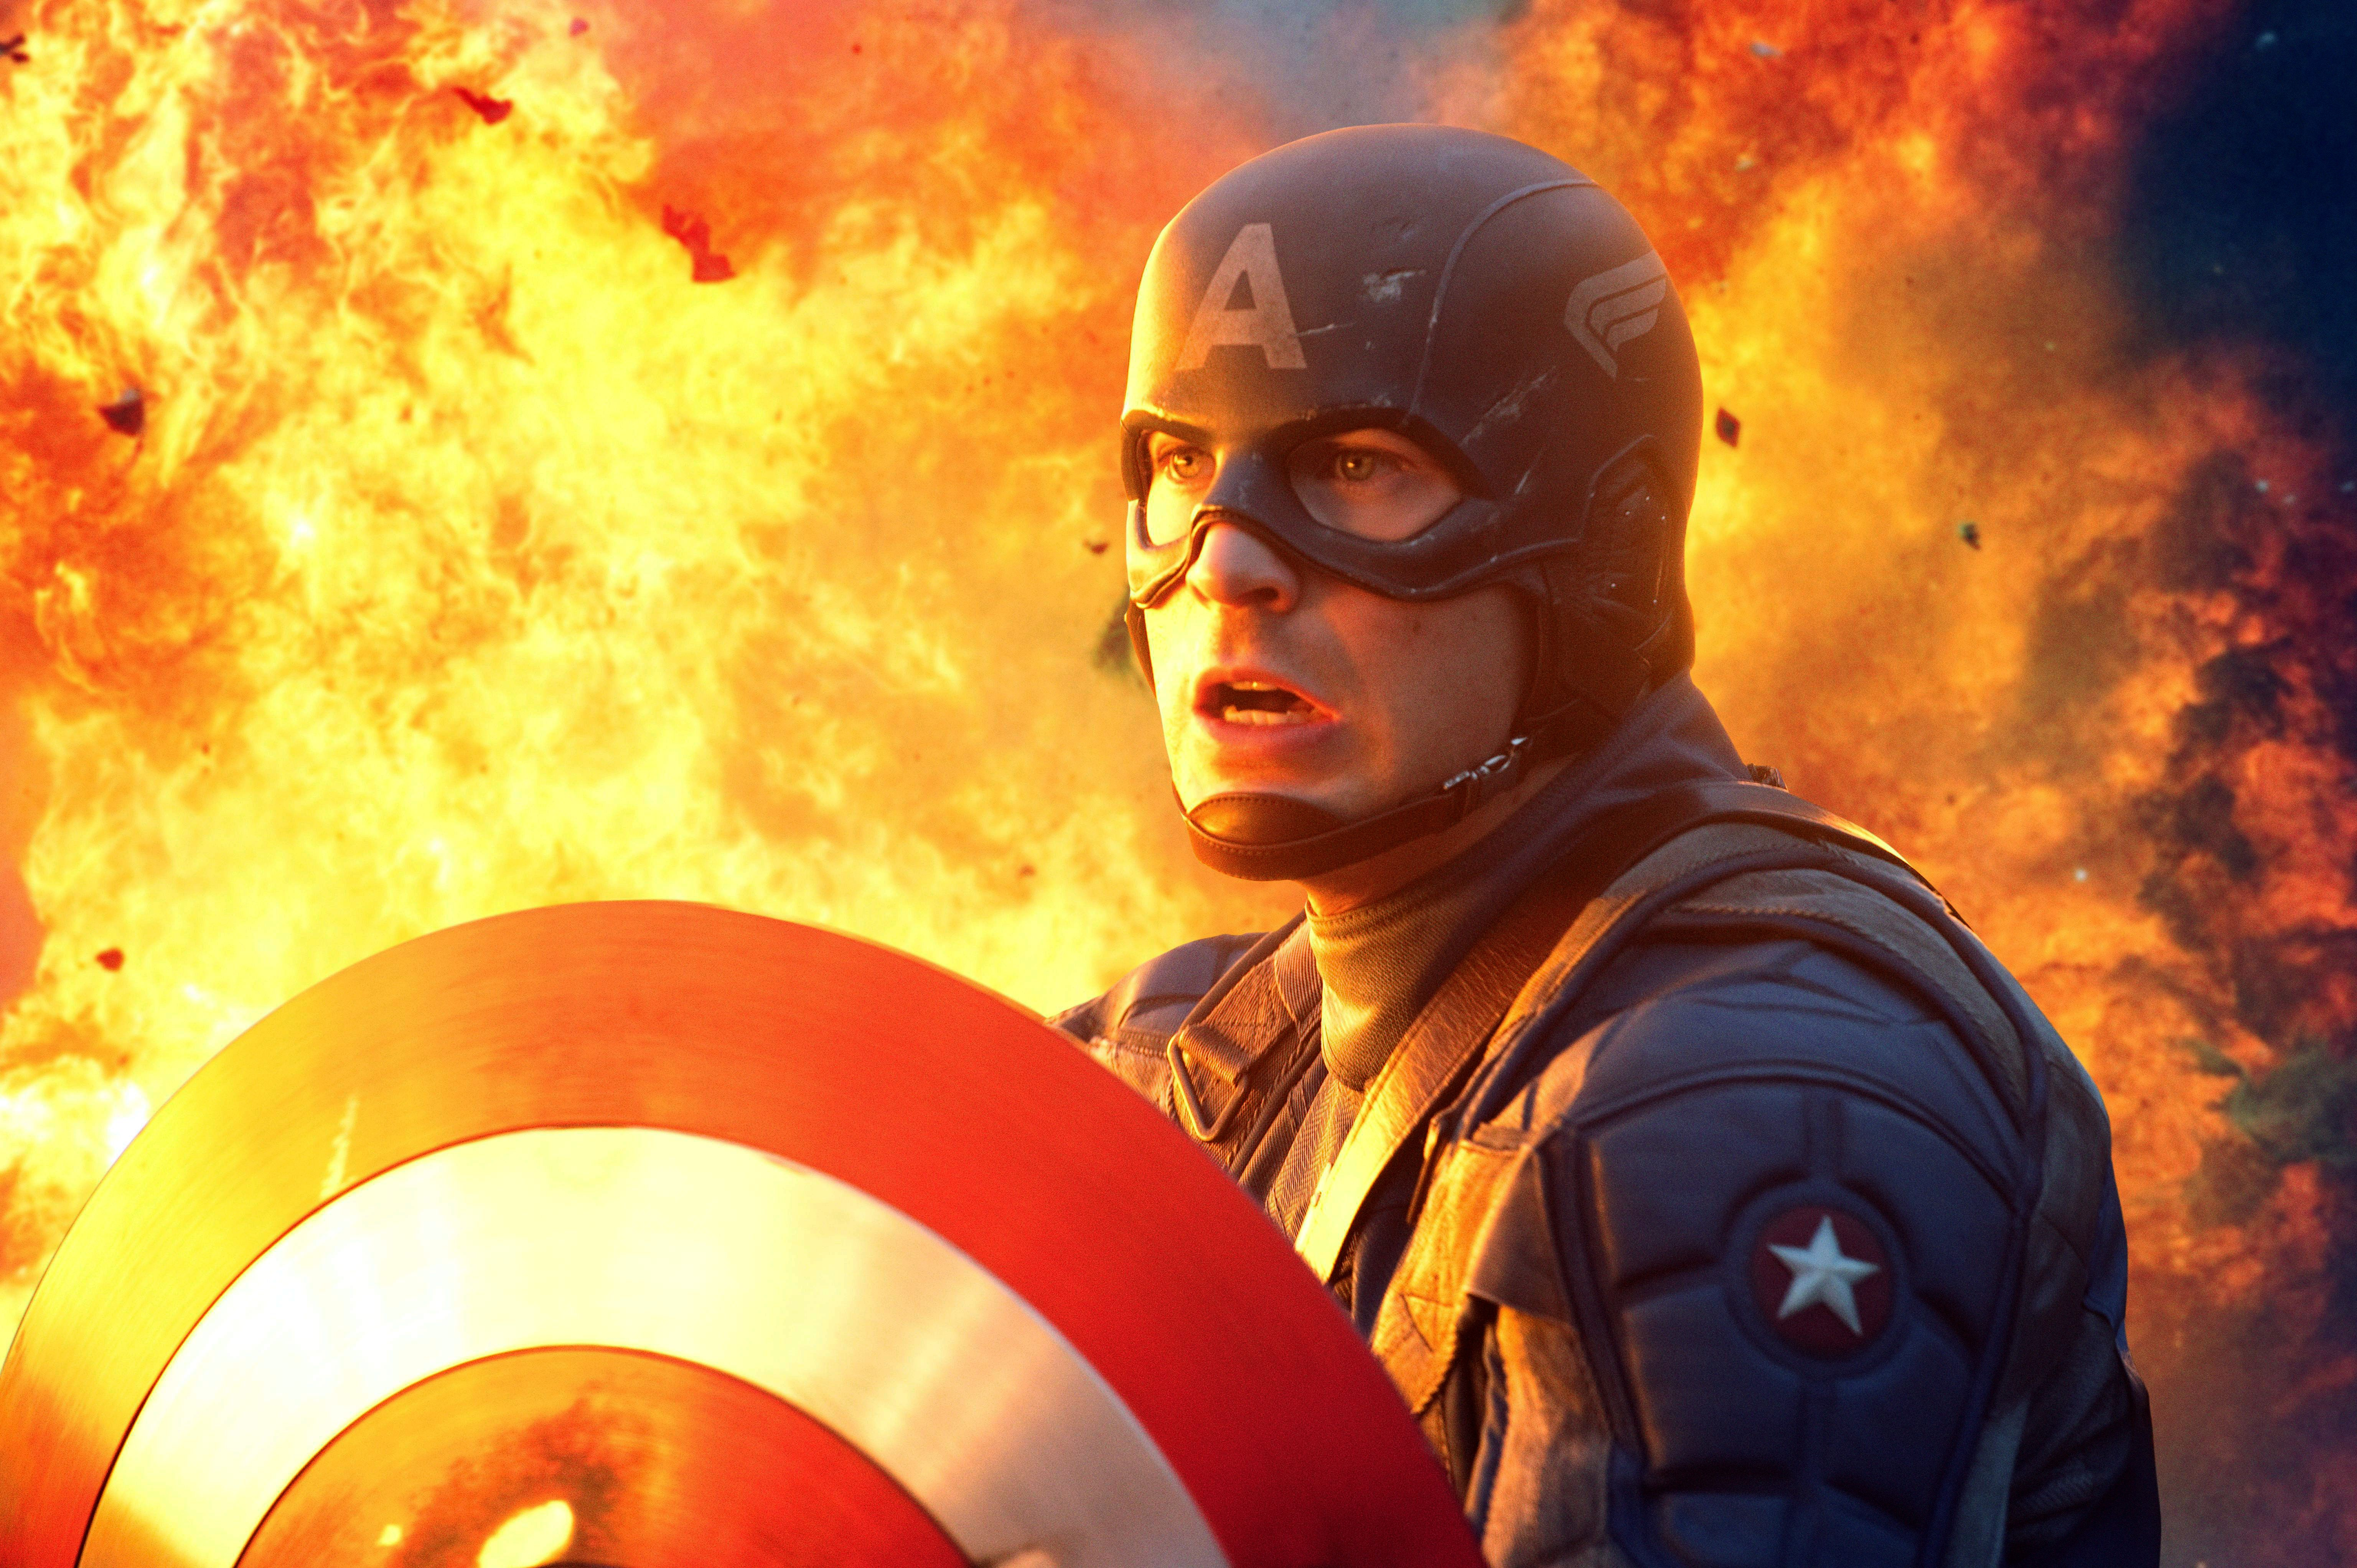 Captain America The First Avenger Image   ID 20   Image Abyss